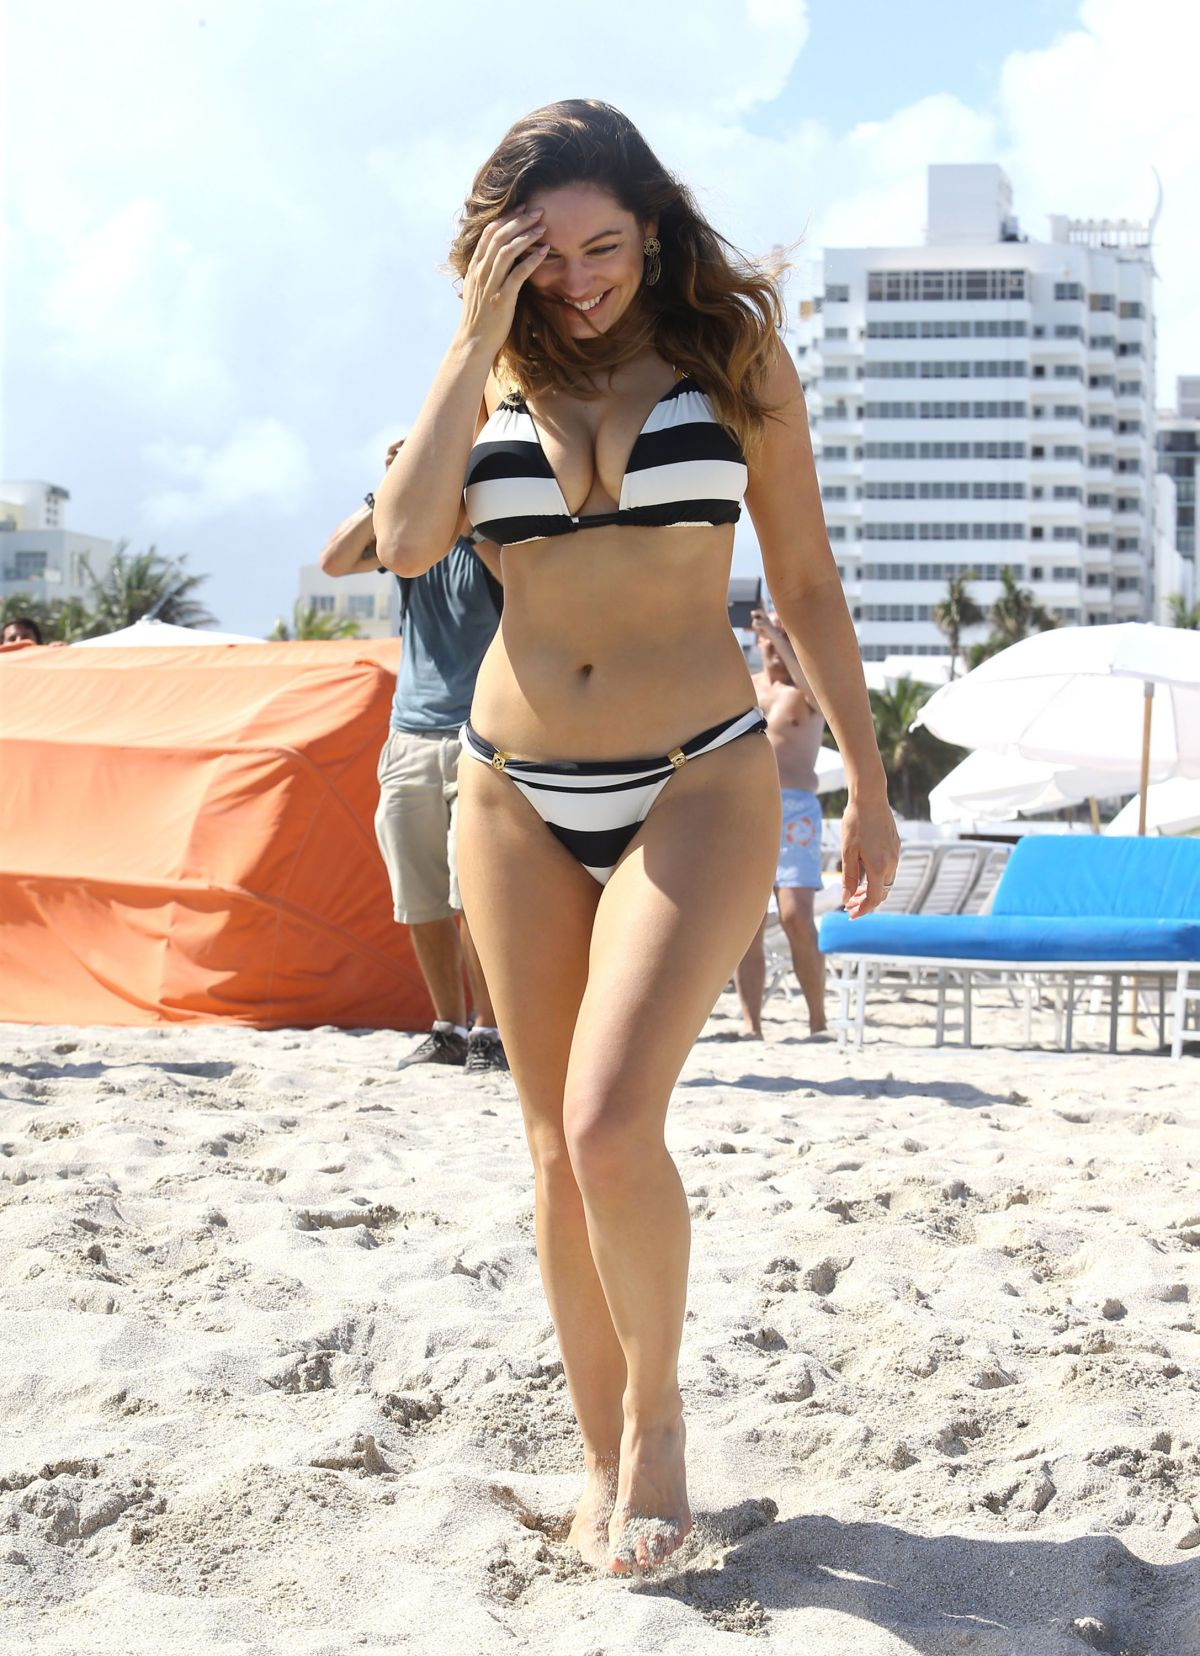 Kelly Brook in Patterned Bikini on the beach in Thailand Pic 17 of 35